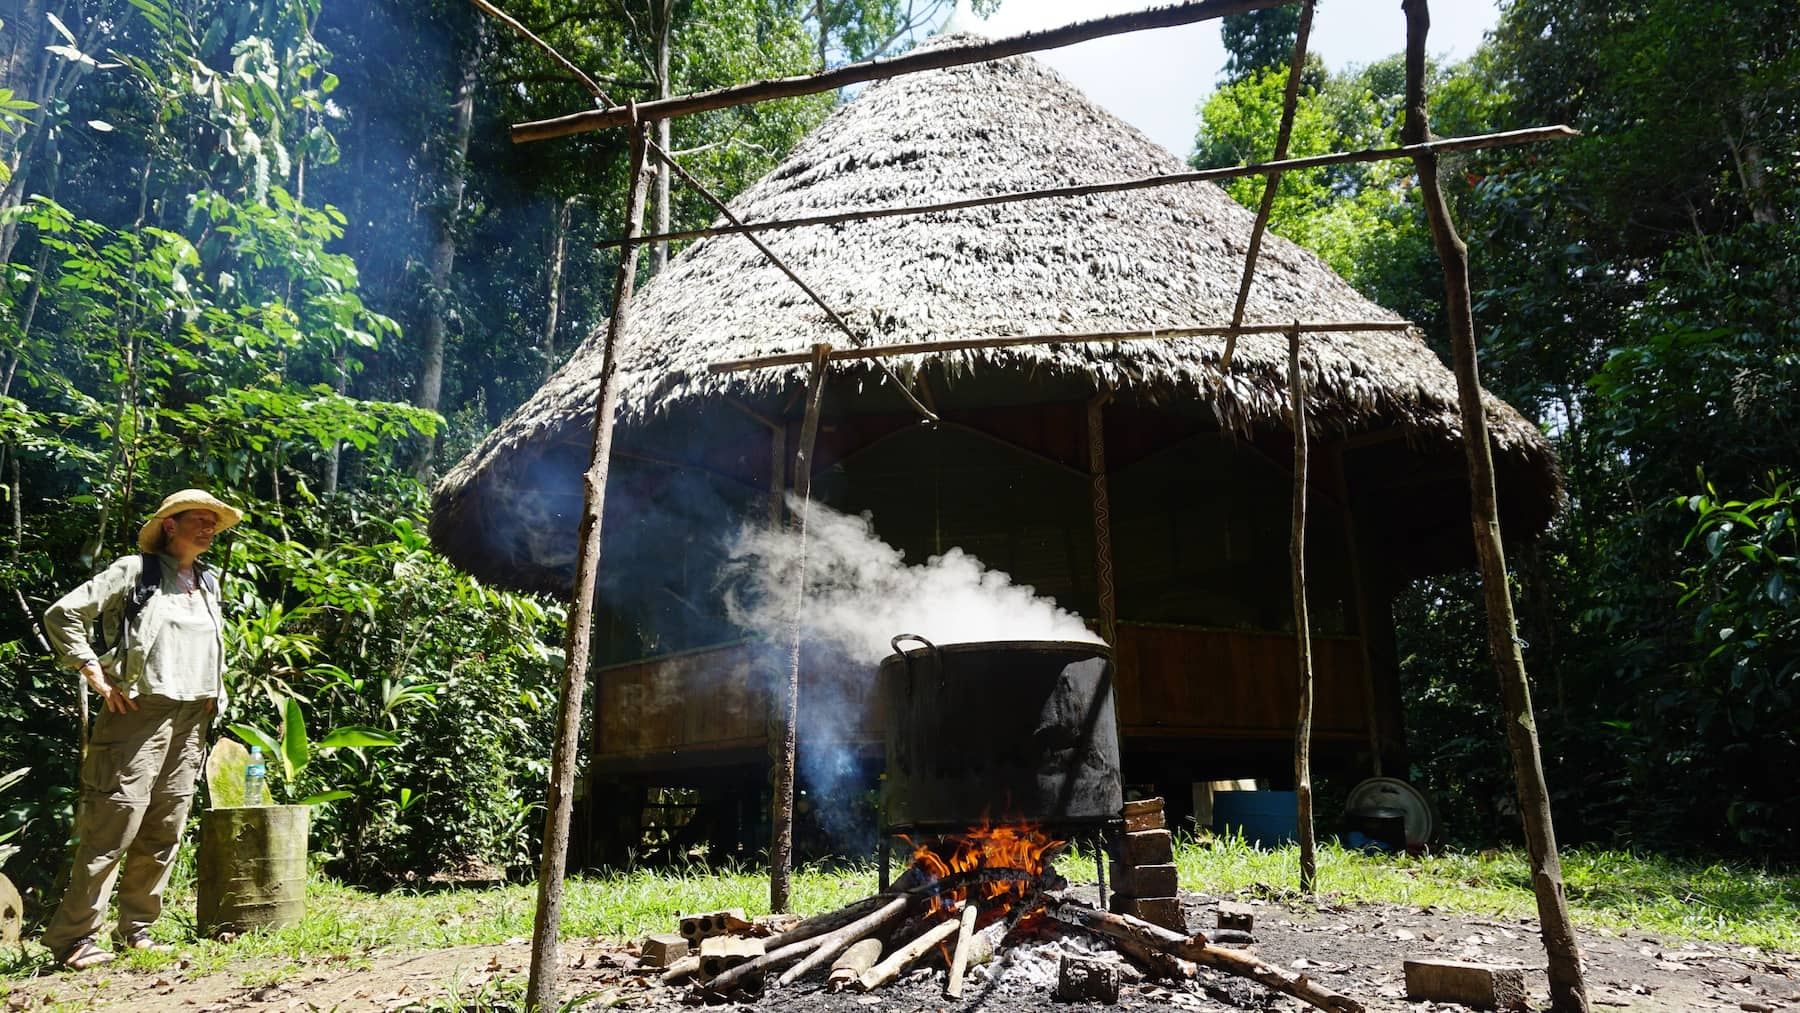 Boiling ayahuasca brew at Rainforest Healing Center